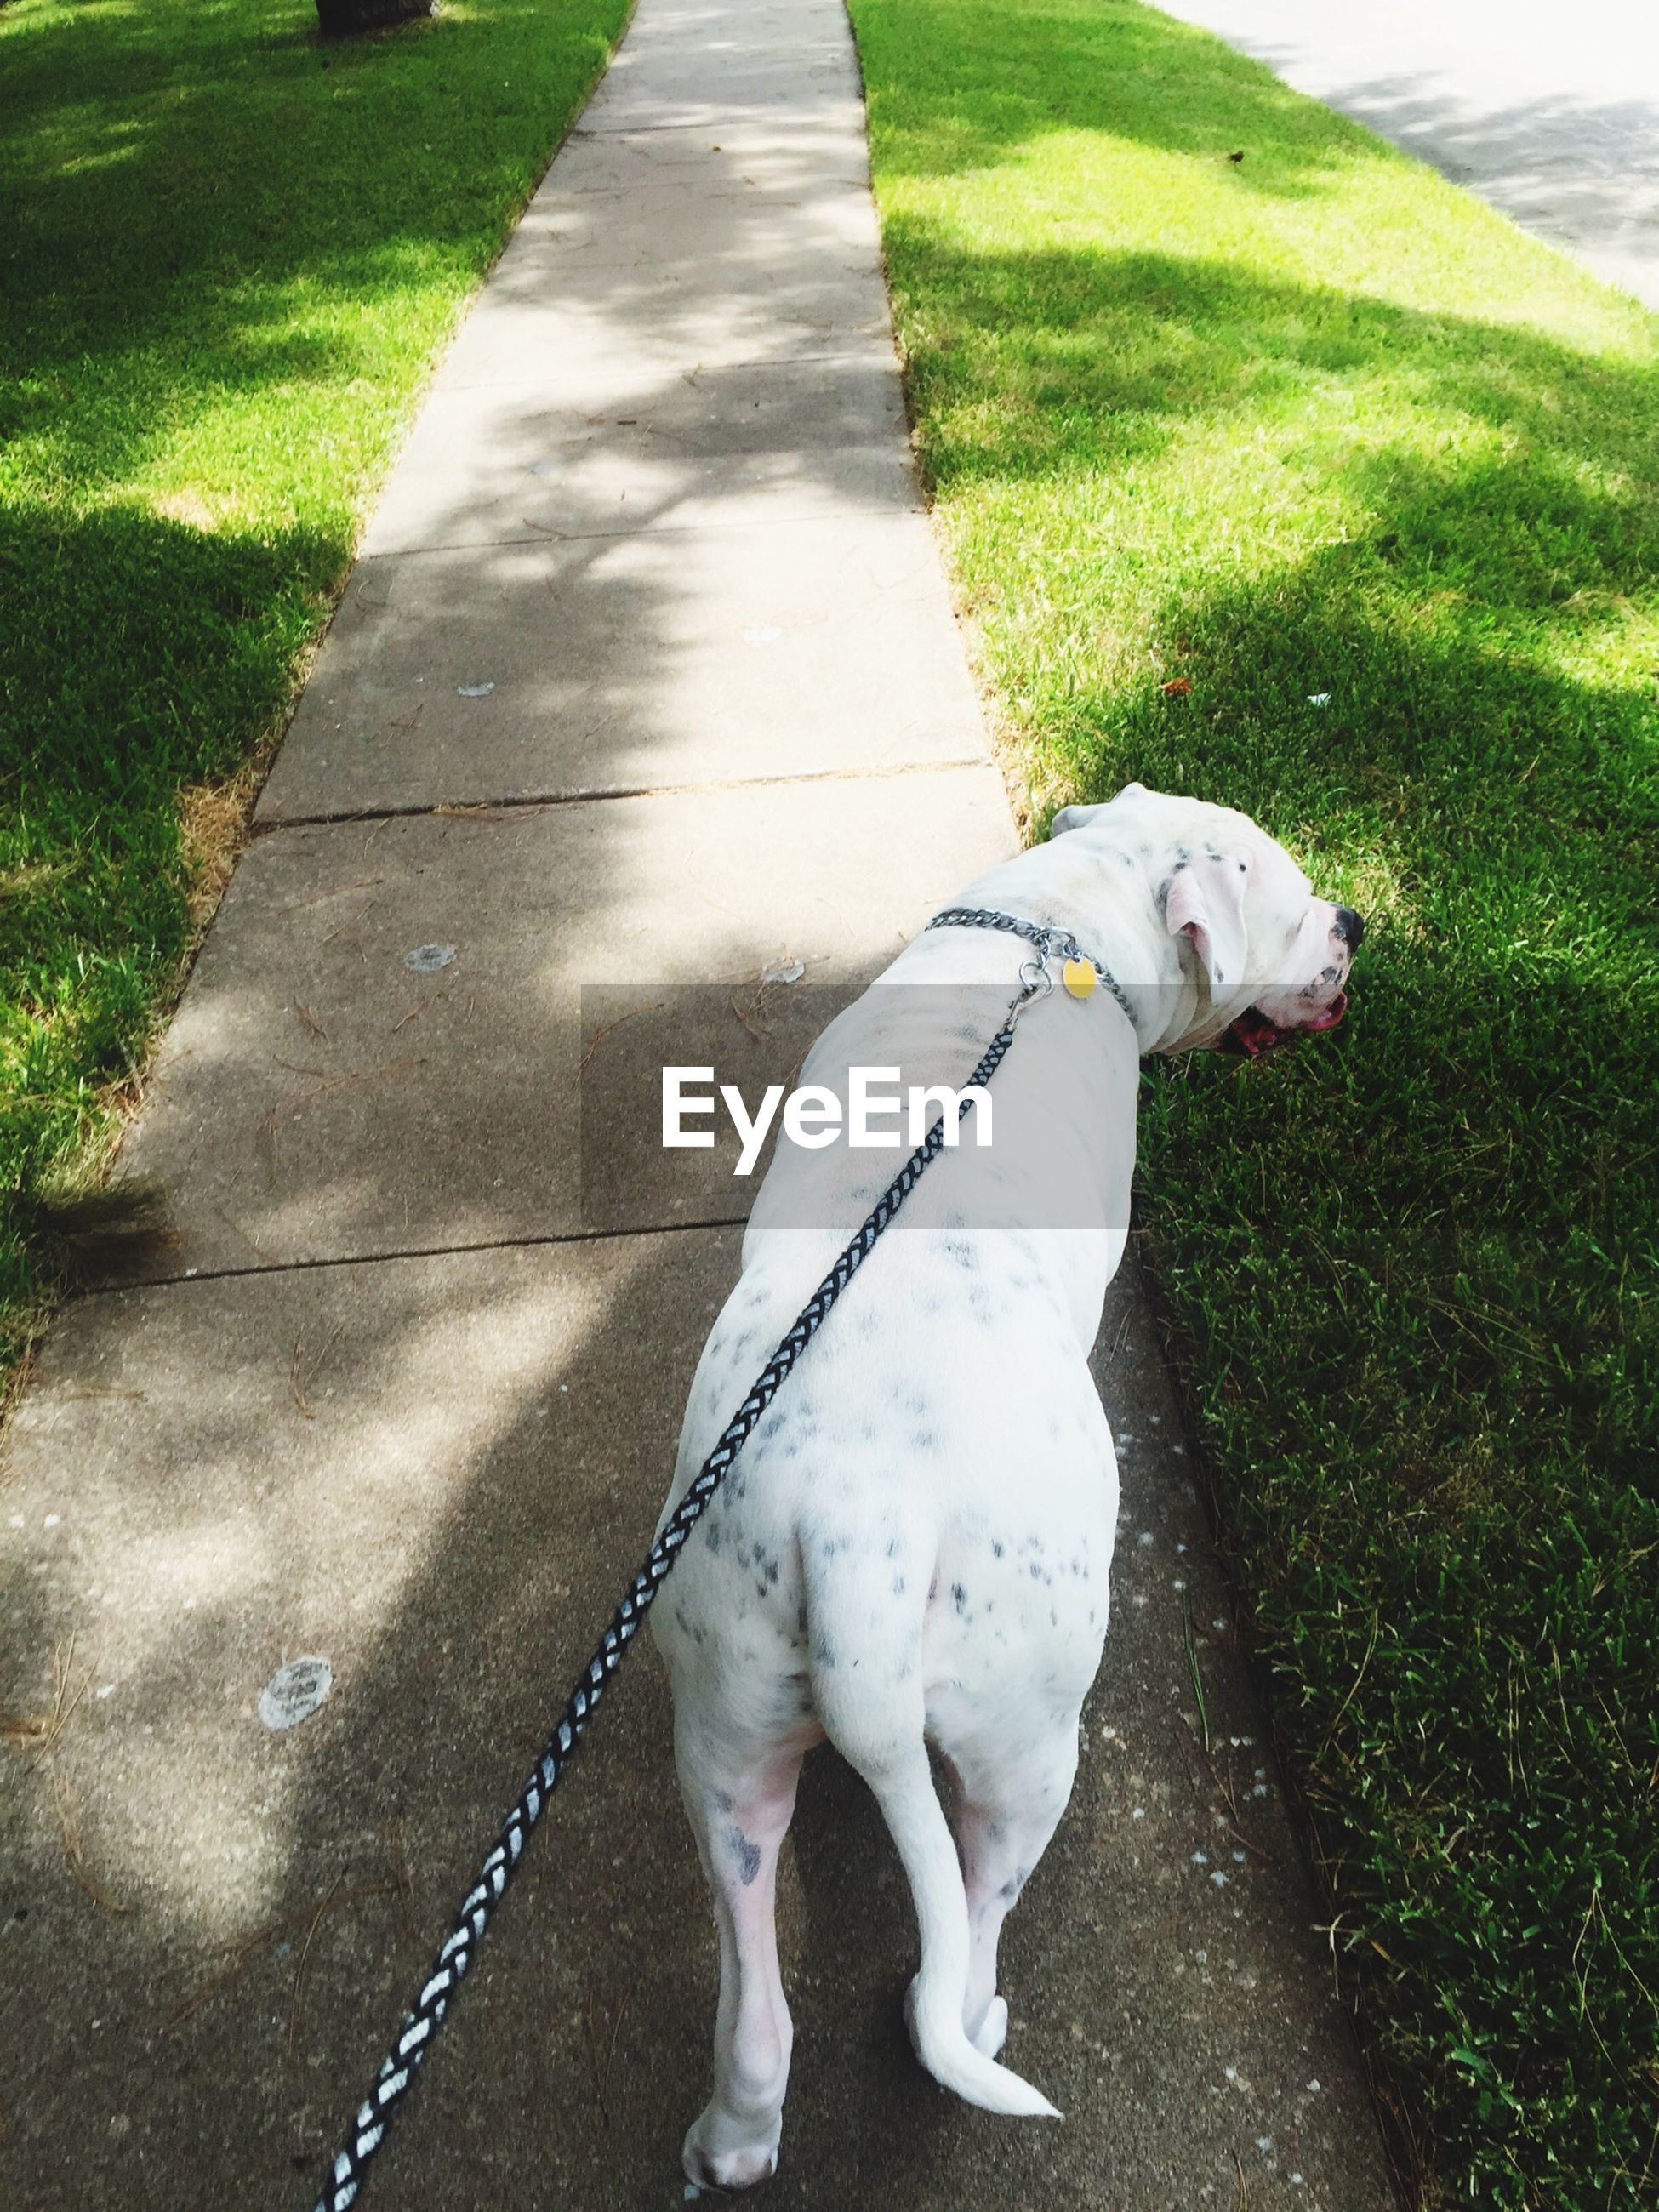 animal themes, domestic animals, one animal, grass, pets, high angle view, mammal, dog, white color, full length, field, shadow, sunlight, grassy, street, outdoors, day, road, footpath, walking